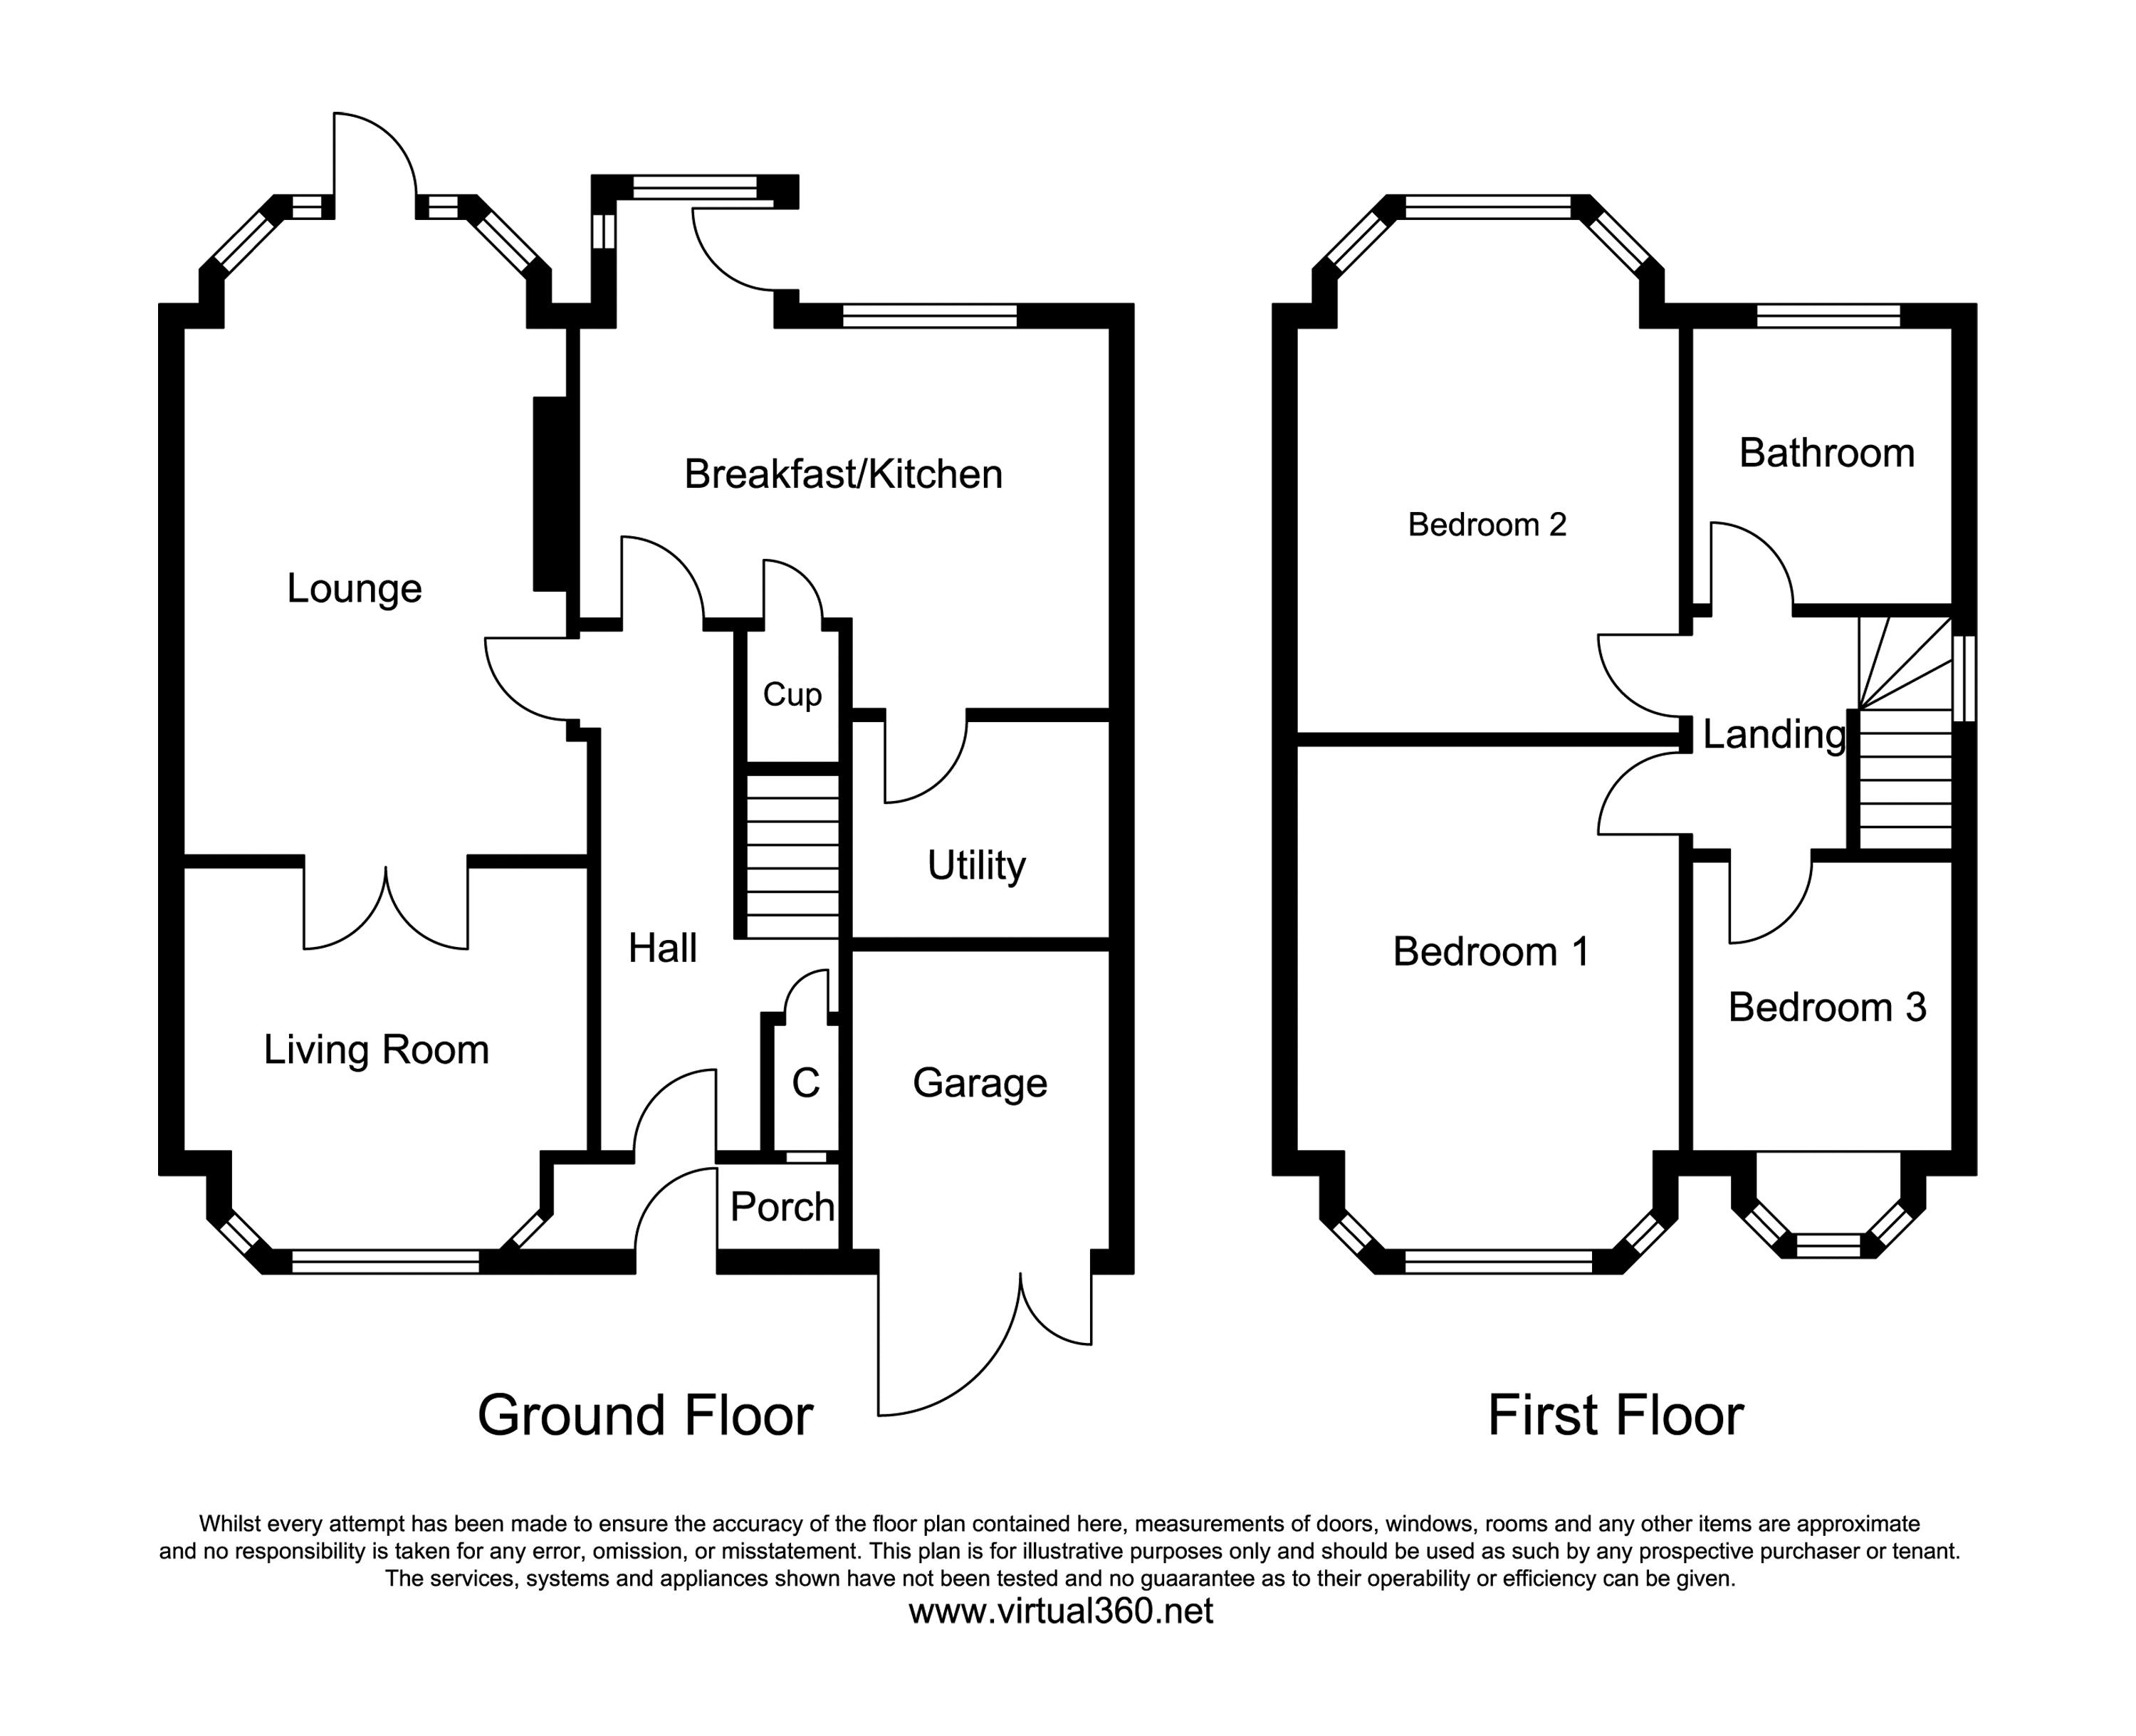 Westwood Road, Sutton Coldfield floor plan